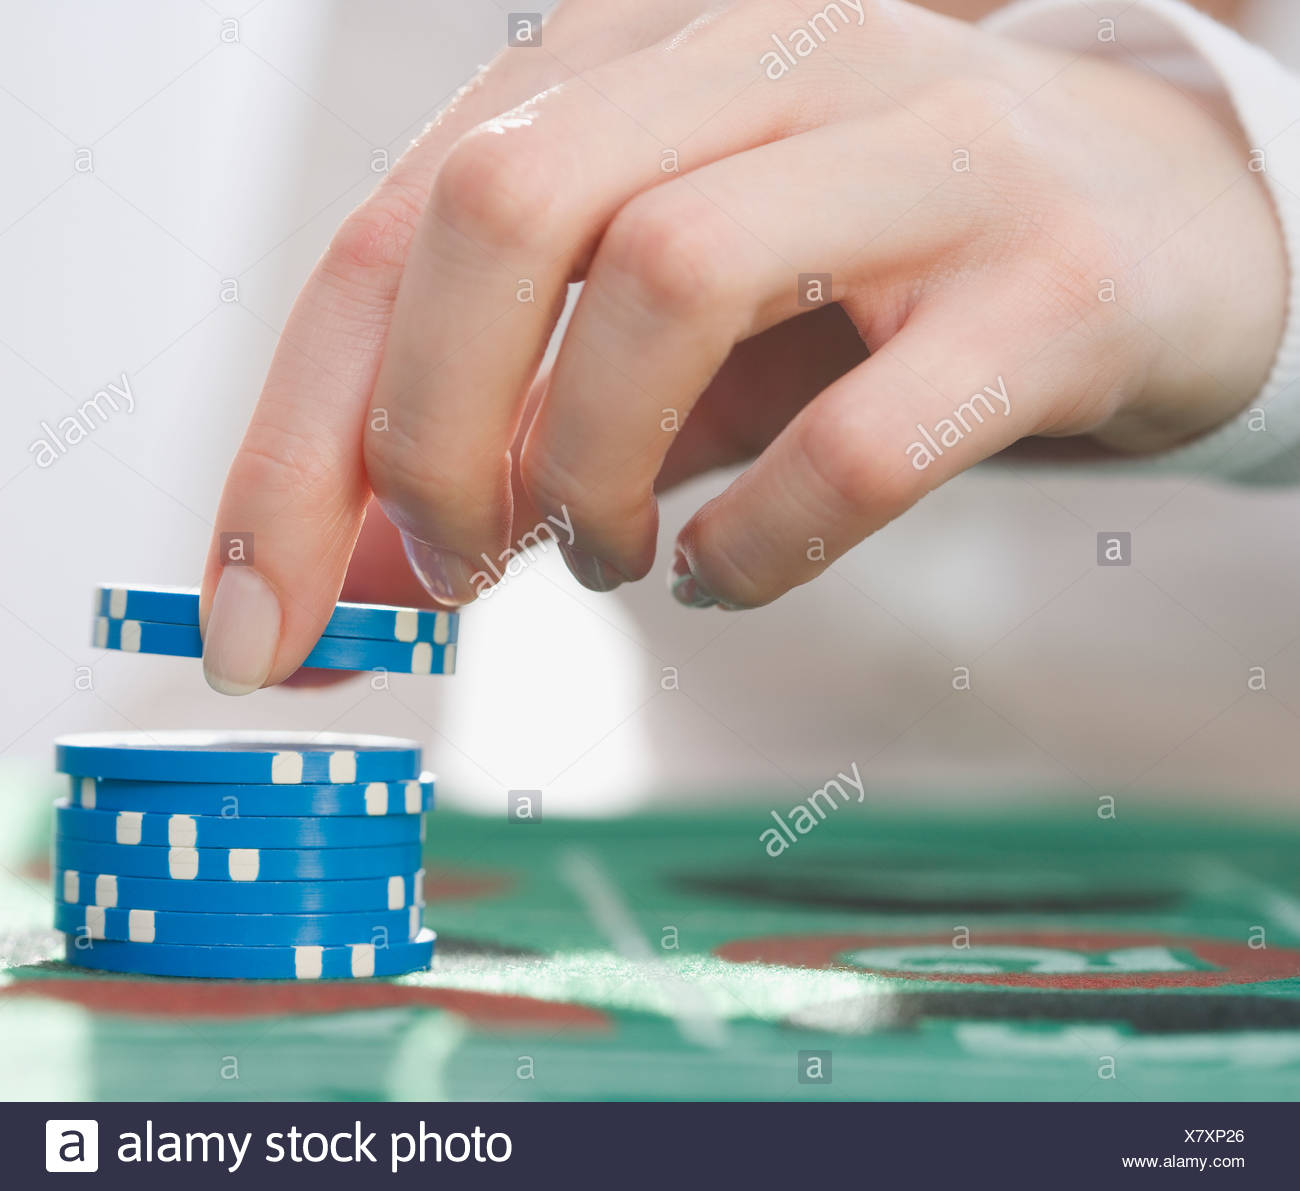 Woman picking up poker chips - Stock Image